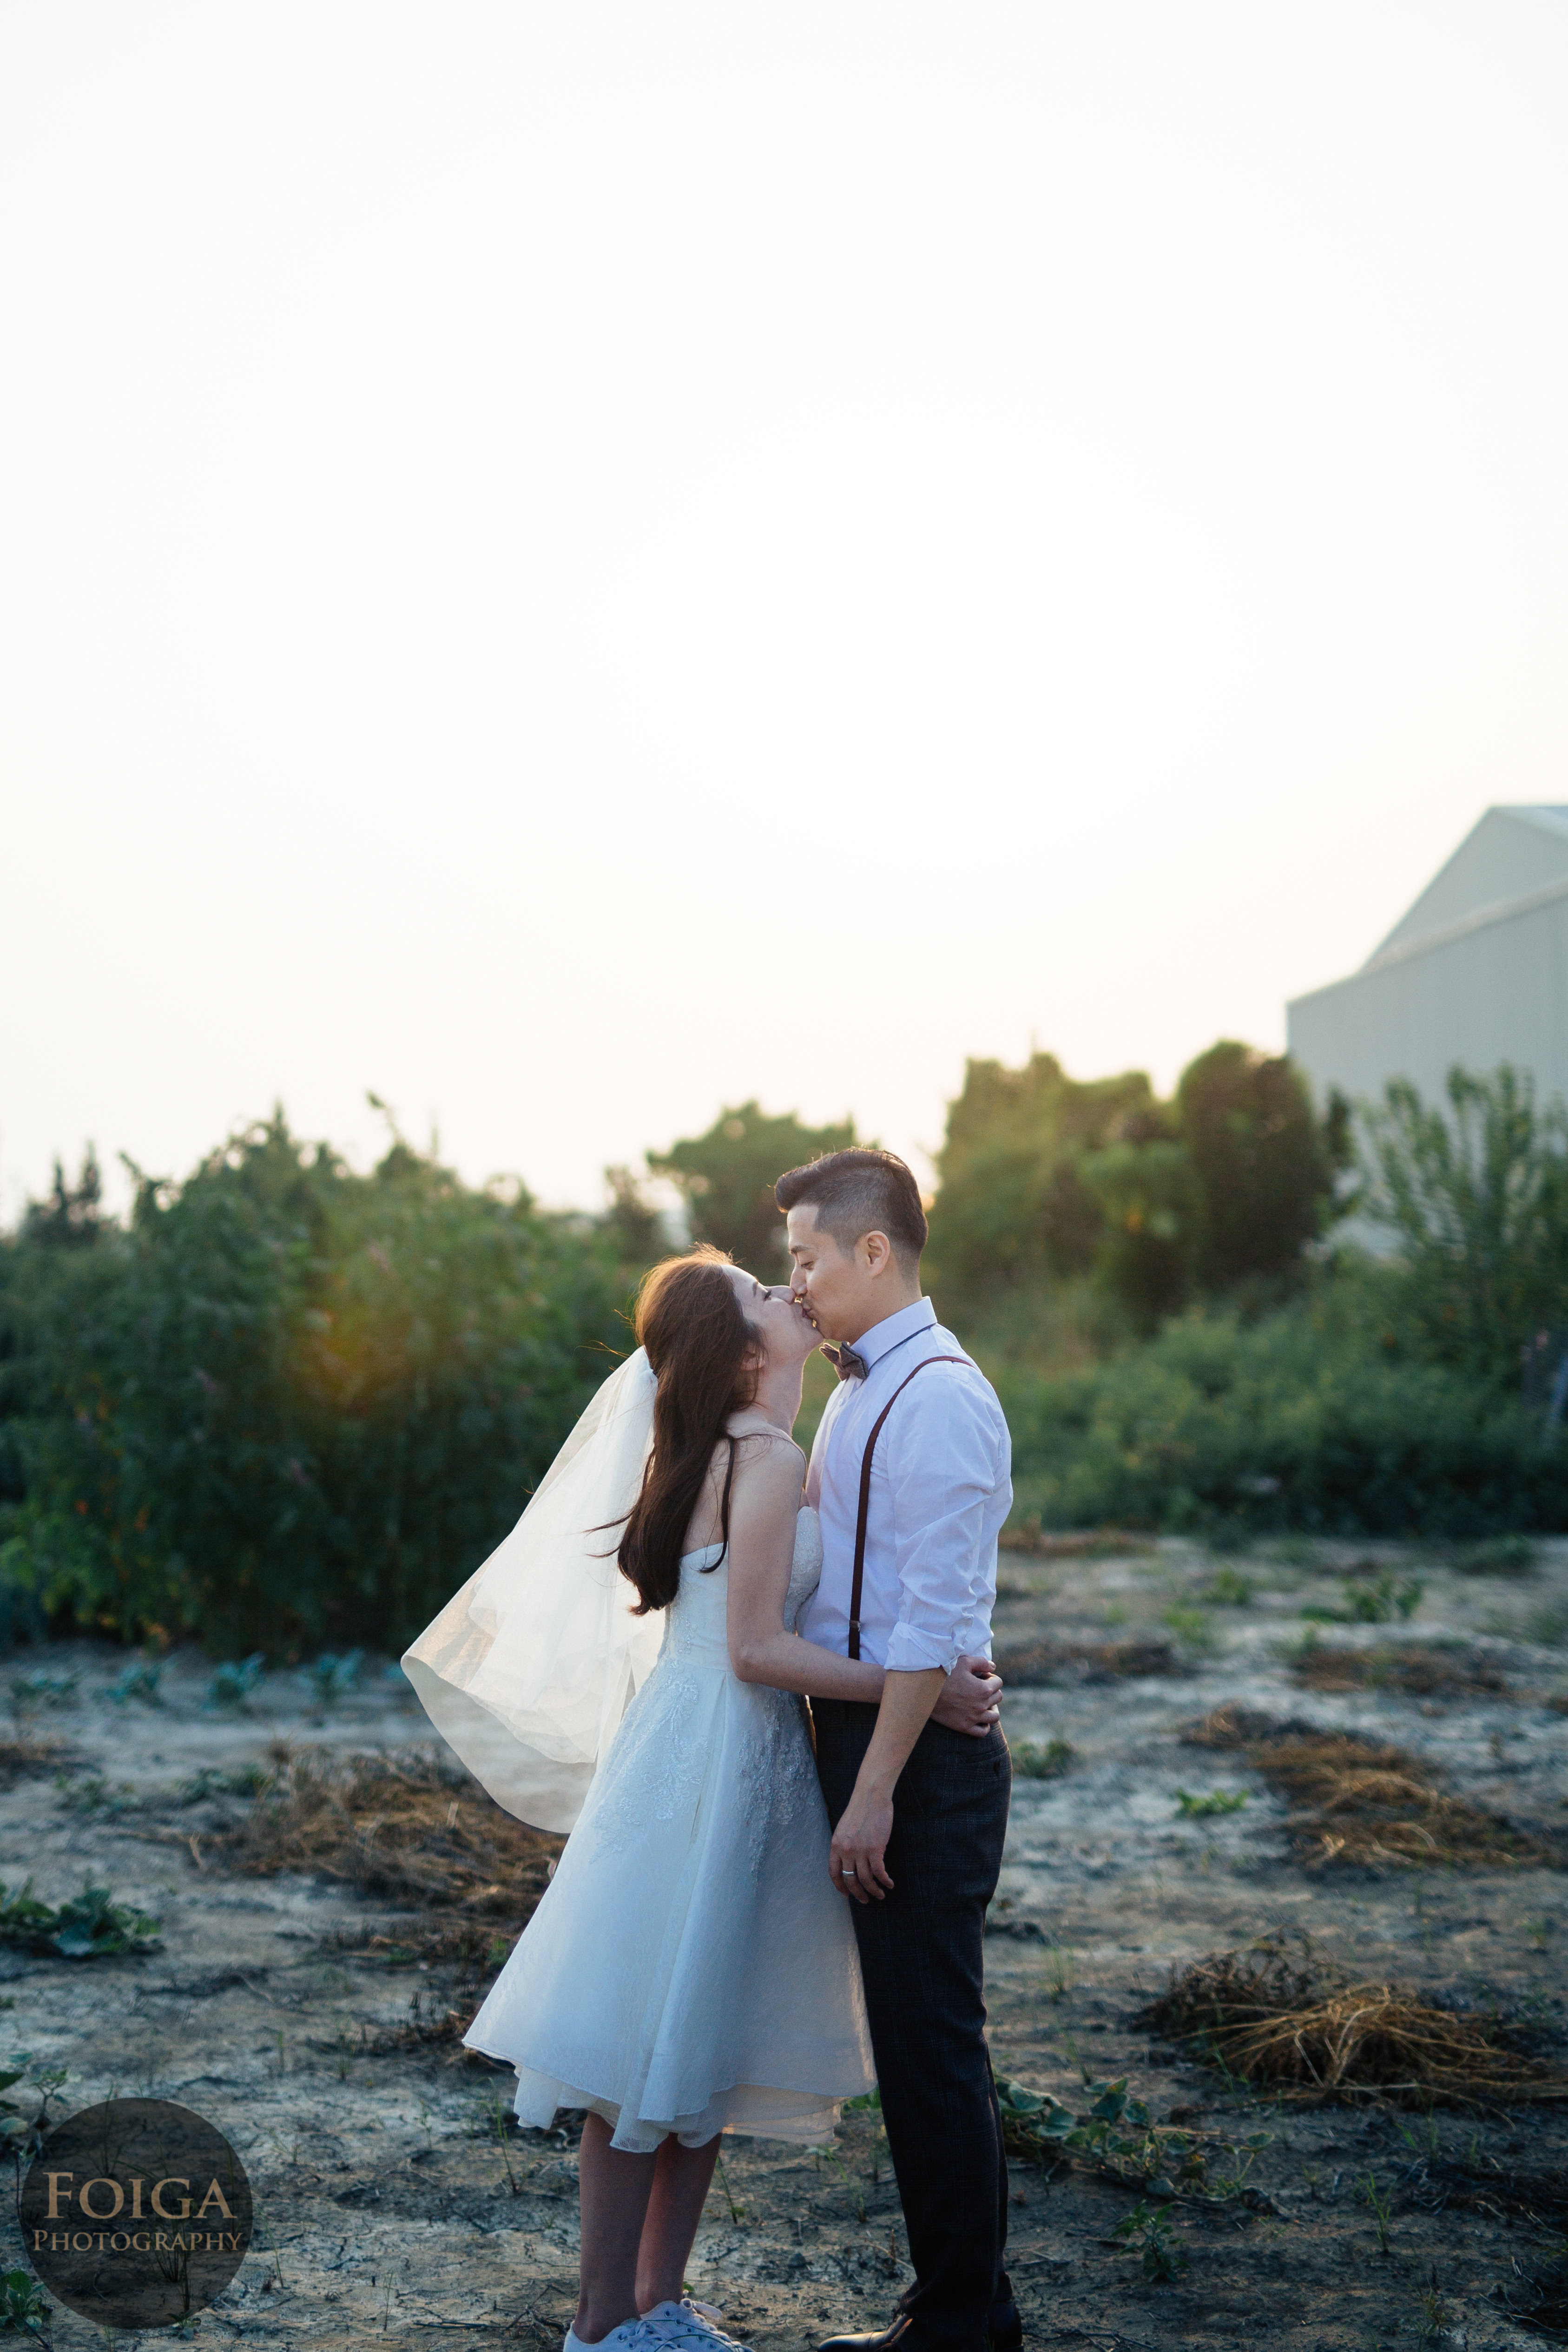 JasonandAmy_PreWedding-536